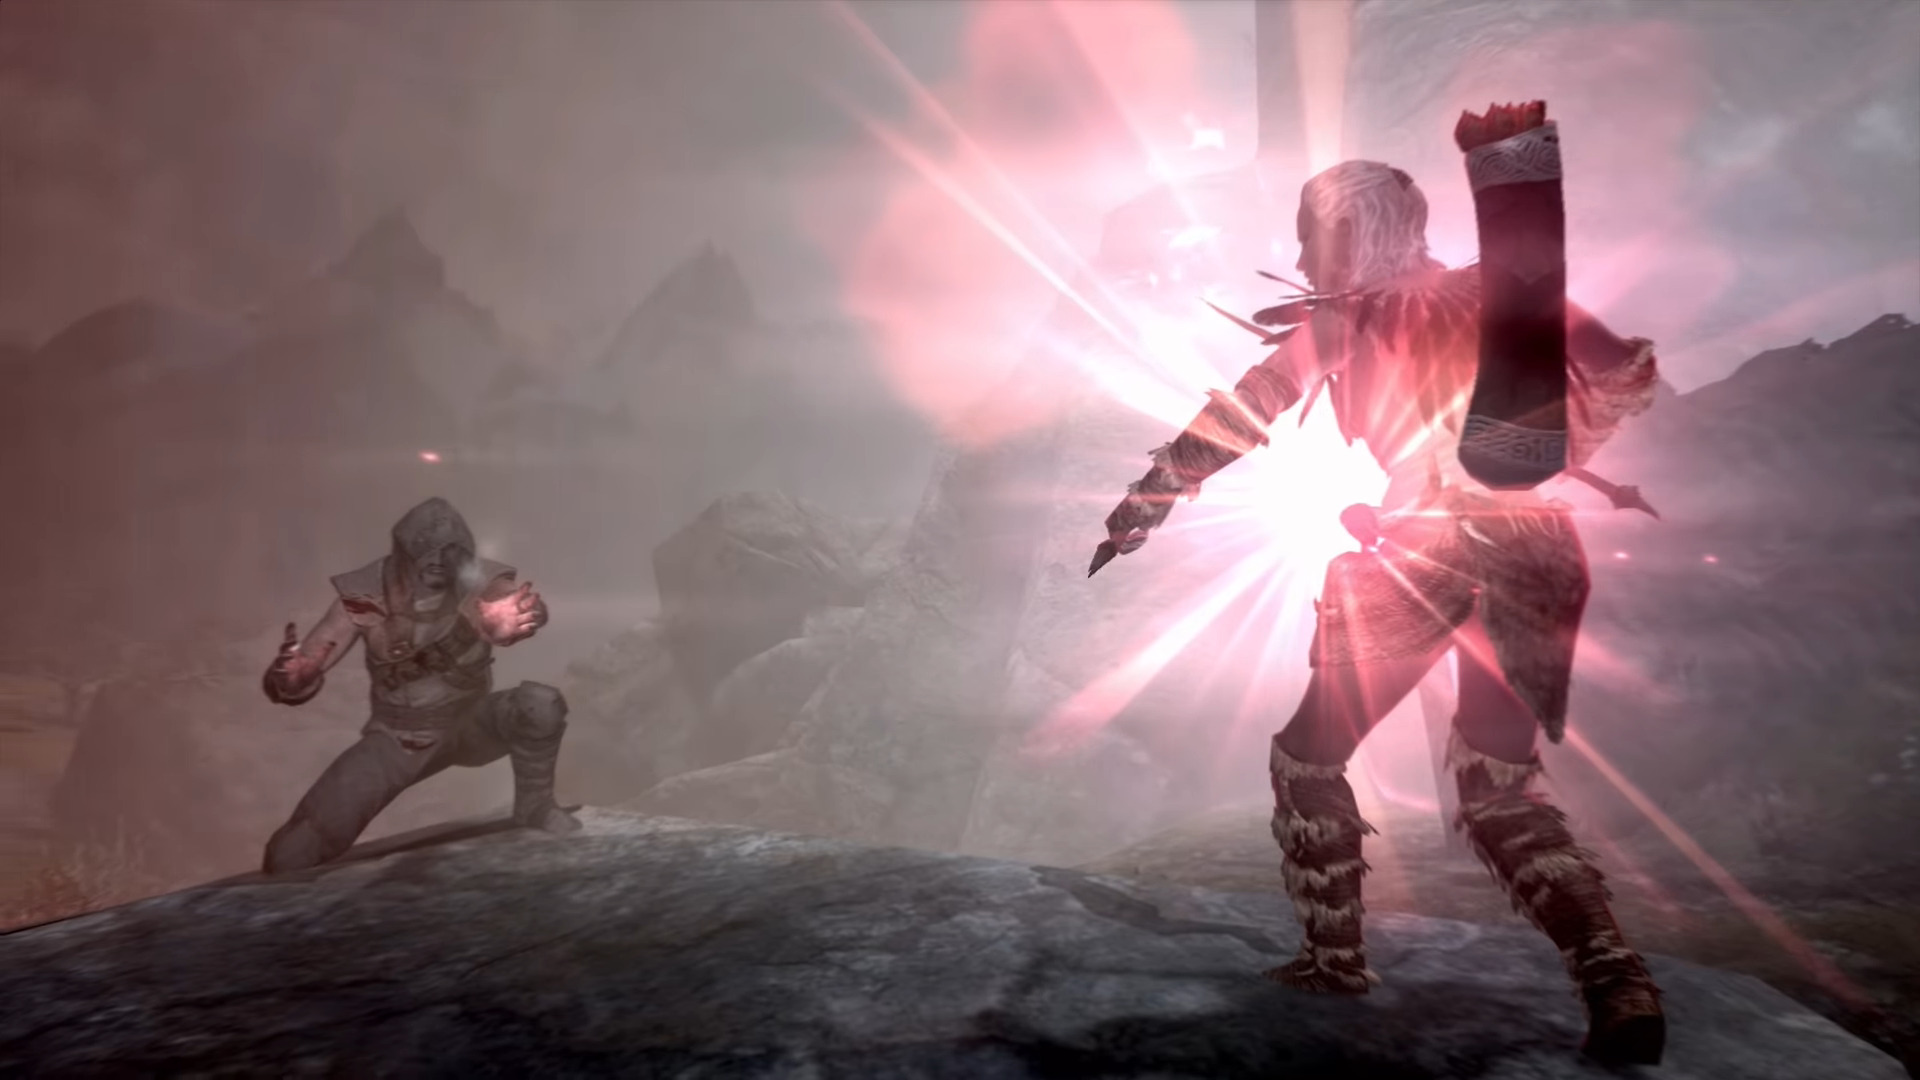 Skyrim Build Ideas: The Illusionist – Perks, Quests, and Roleplay Ideas For New Playstyle